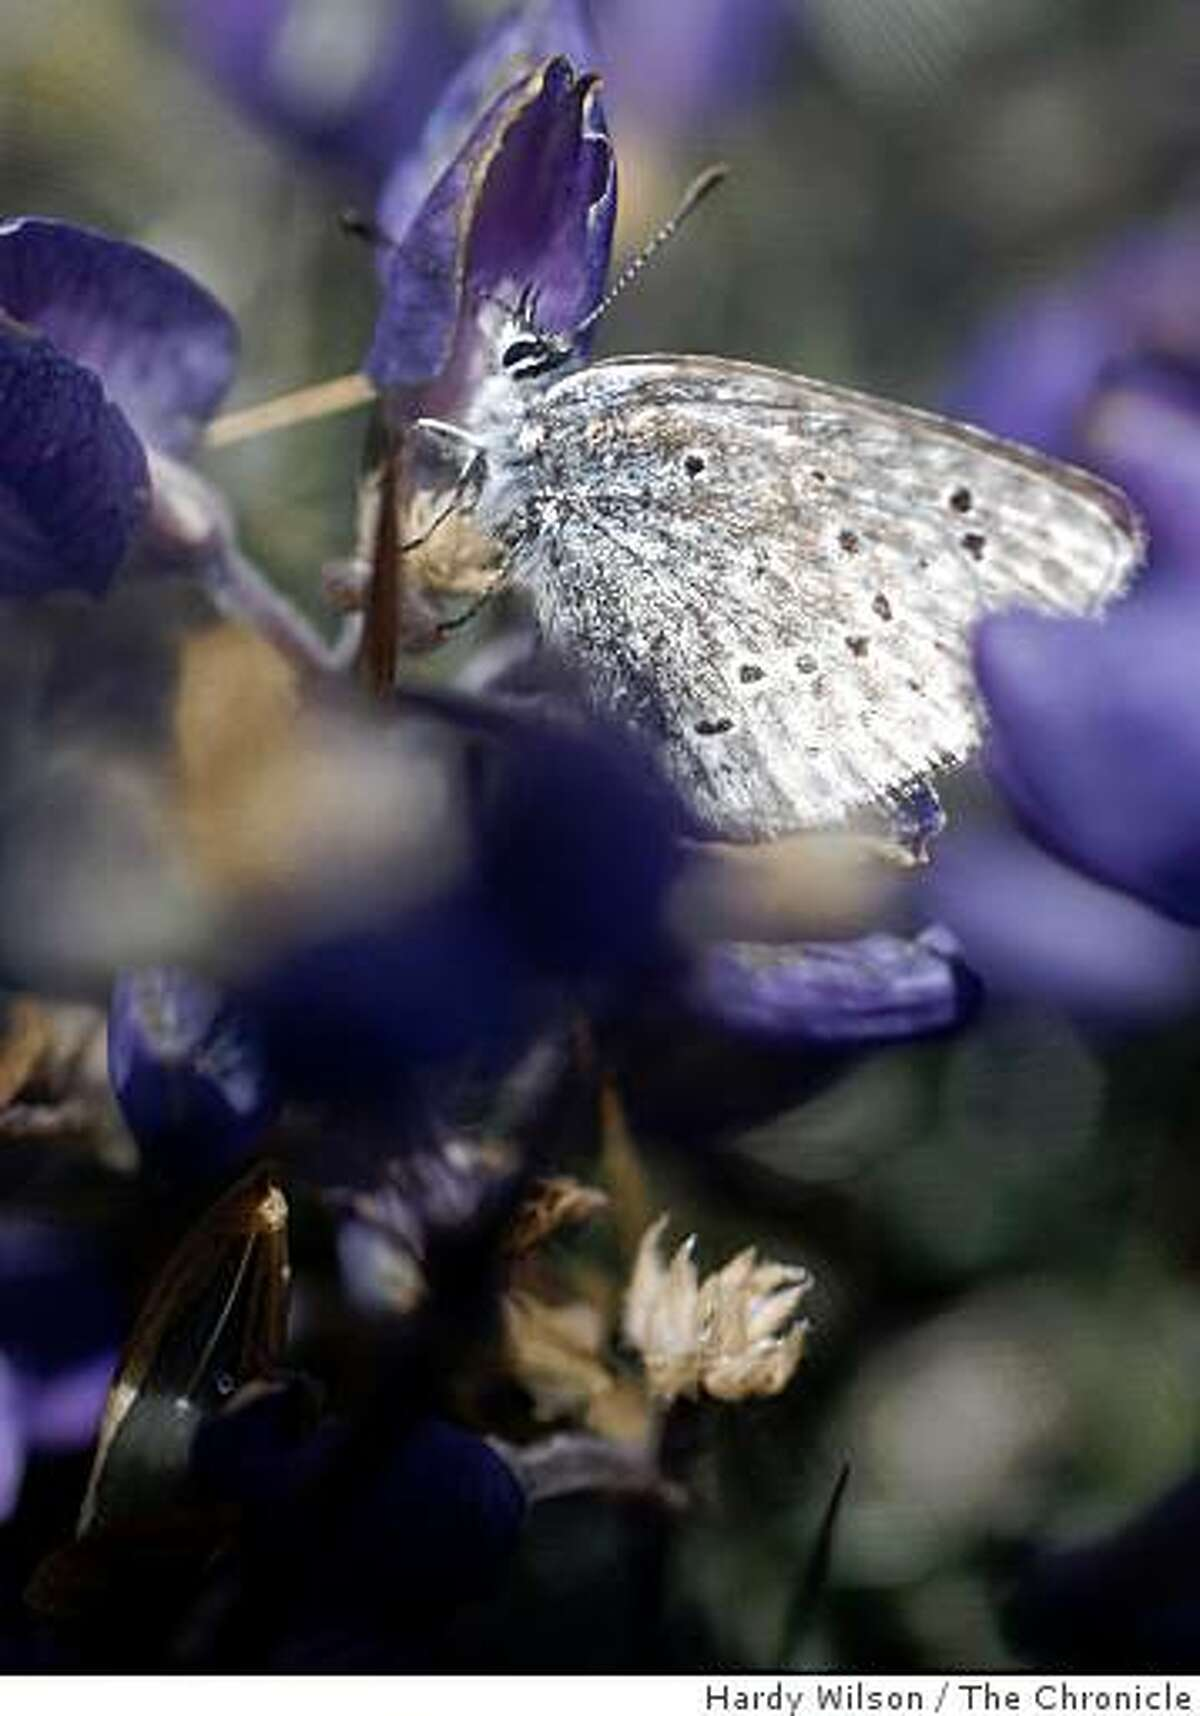 A Mission blue butterfly rests on a silver lupine flower on Twin Peaks in San Francisco, Calif., on Thursday, April 16, 2009. Members of San Francisco's Recreation and Park Department along with the U.S. Fish and Wildlife Service are trying to reintroduce the butterfly, an endangered species, back to the area.